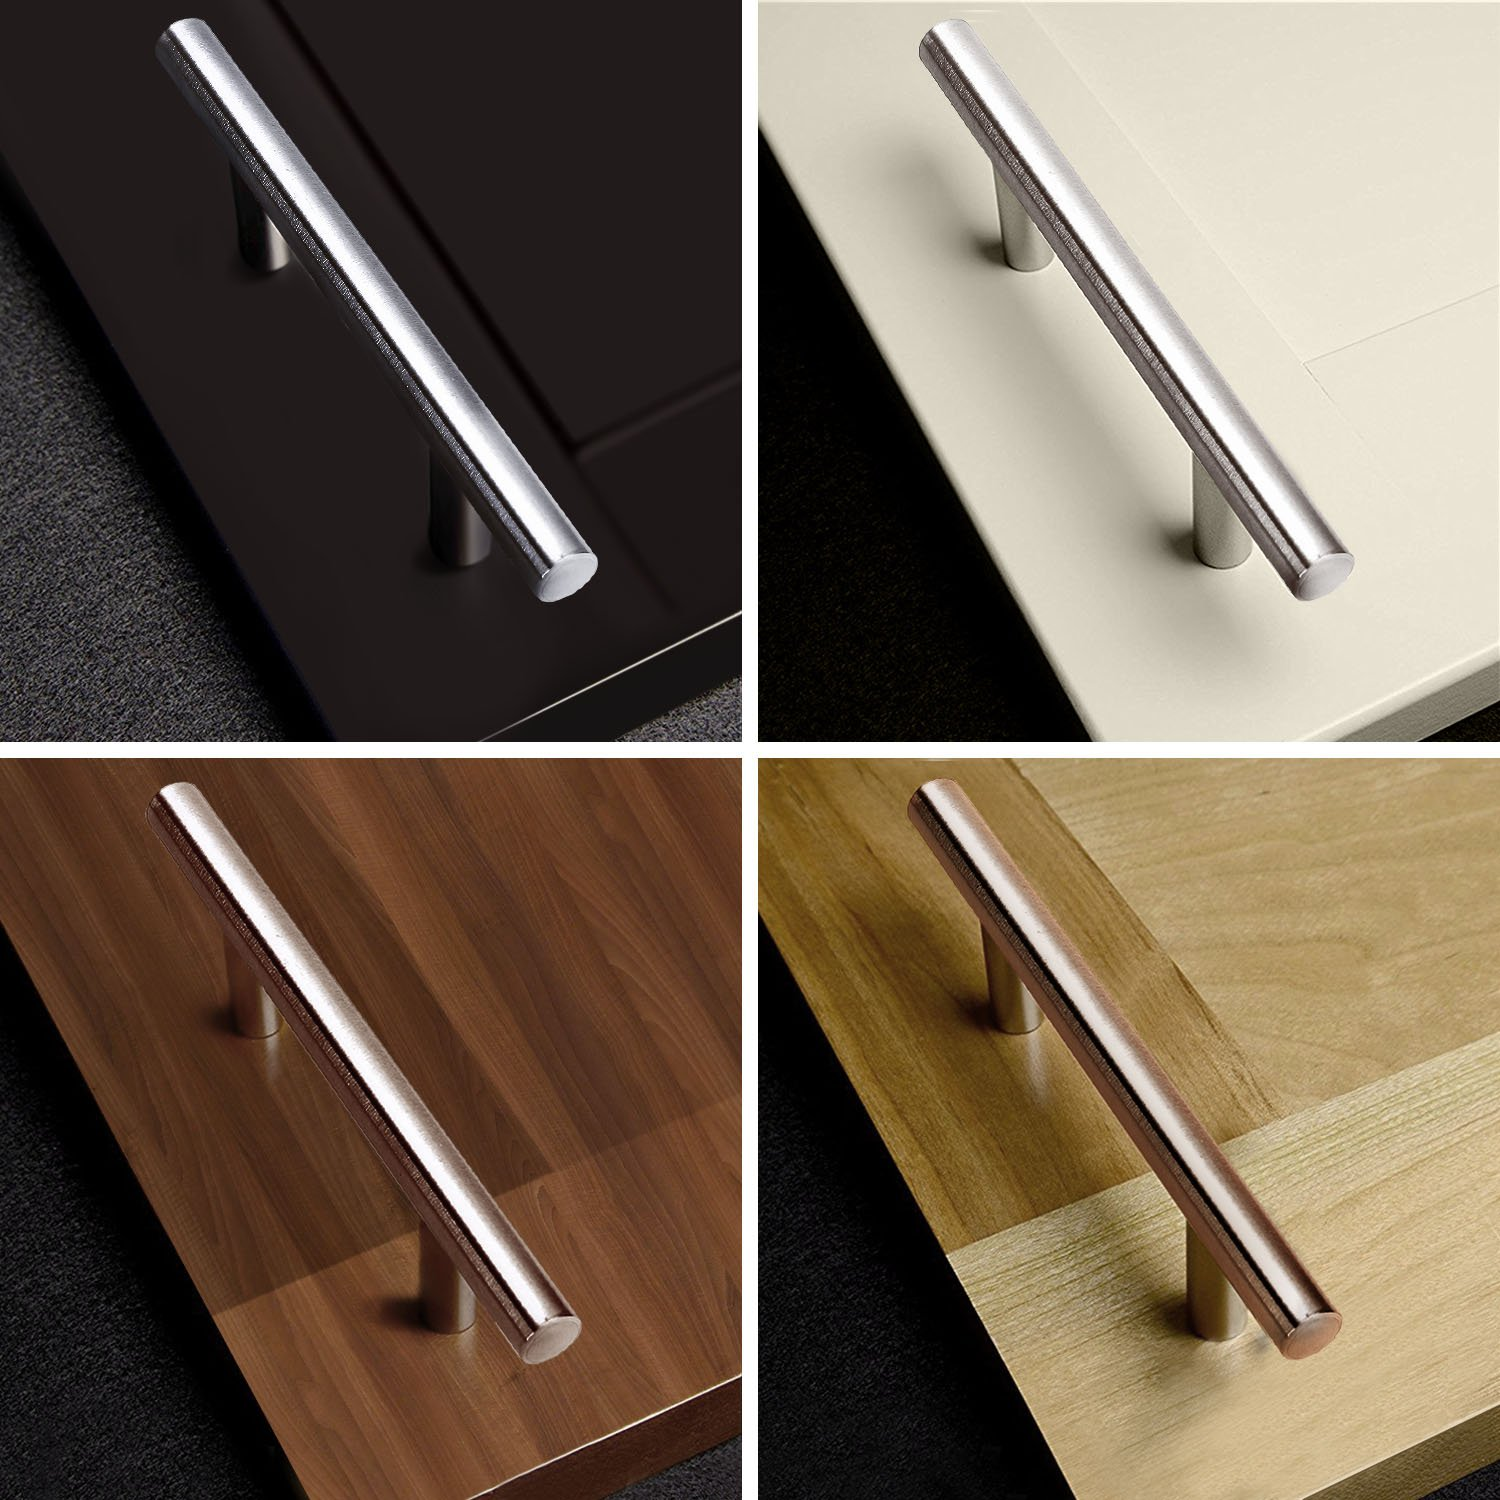 Flexzion T Bar Handle Pull Knobs 24'' (15'' Hole Center) (25 Pack) Hardware Set Stainless Steel Kitchen Door Cabinet Drawer Furniture Appliance Euro Style with Mounting Screws by Flexzion (Image #4)